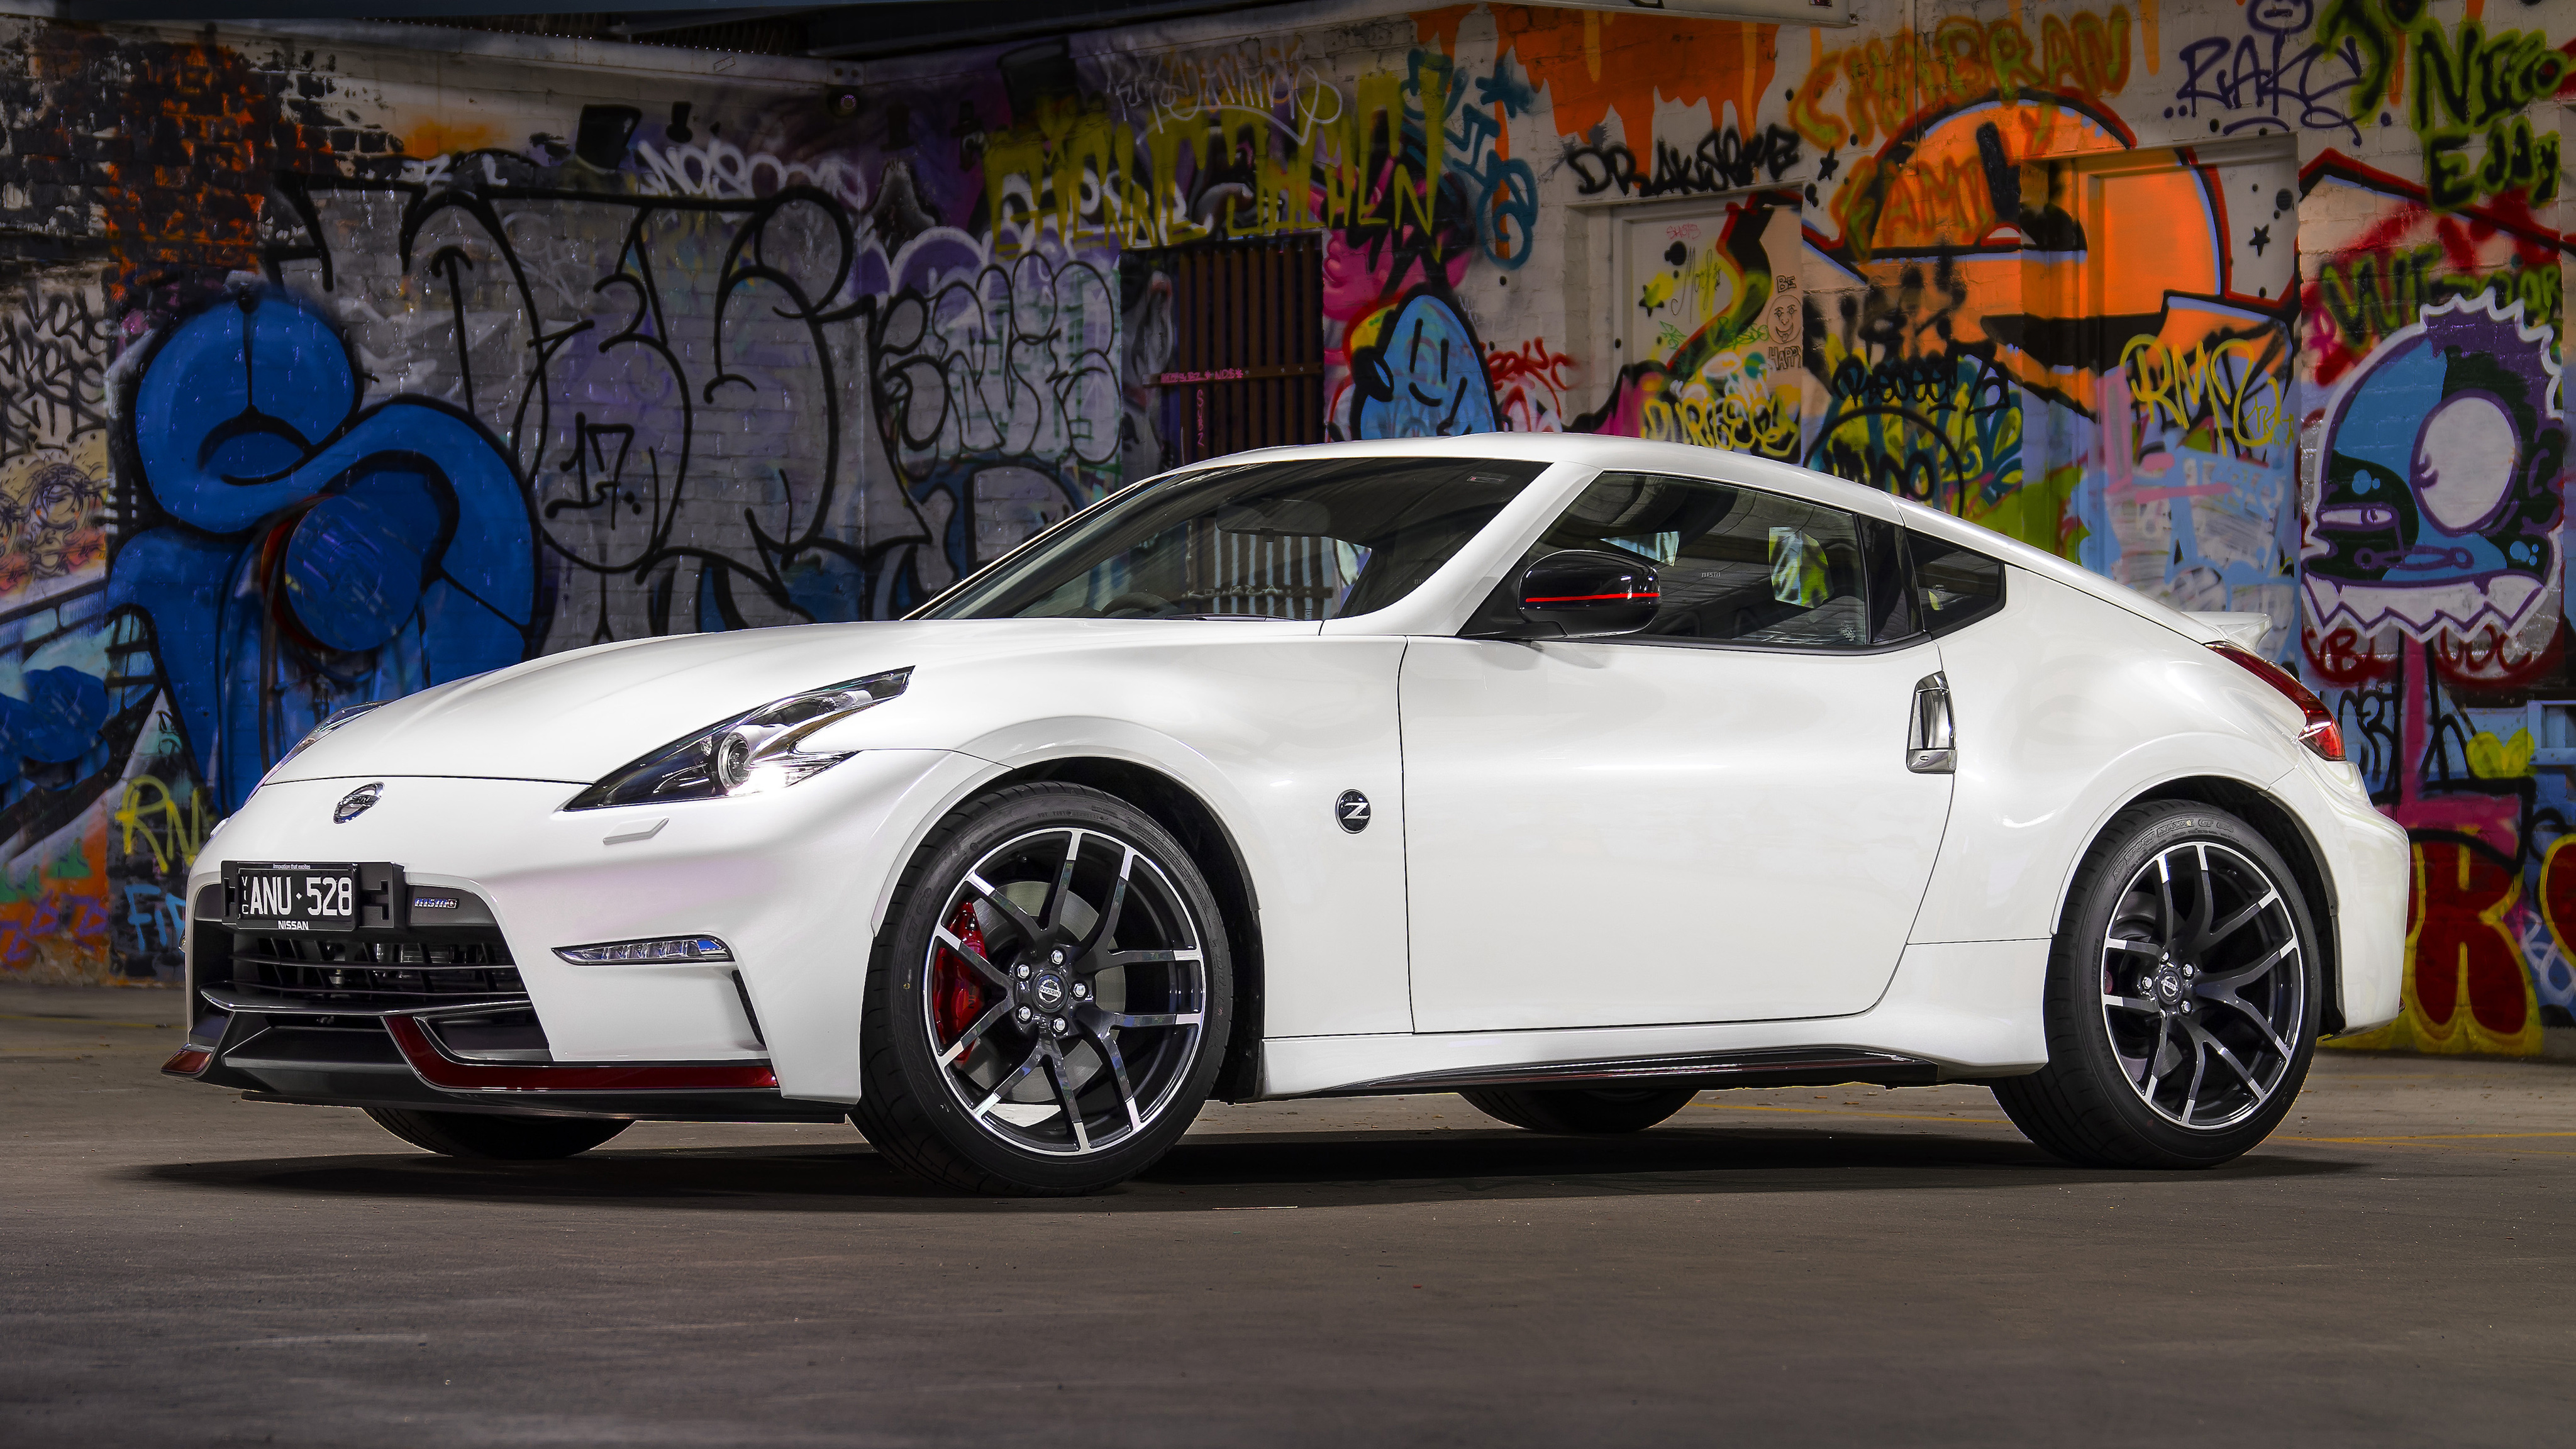 2018 nissan 370z nismo 4k wallpaper hd car wallpapers id 8329. Black Bedroom Furniture Sets. Home Design Ideas